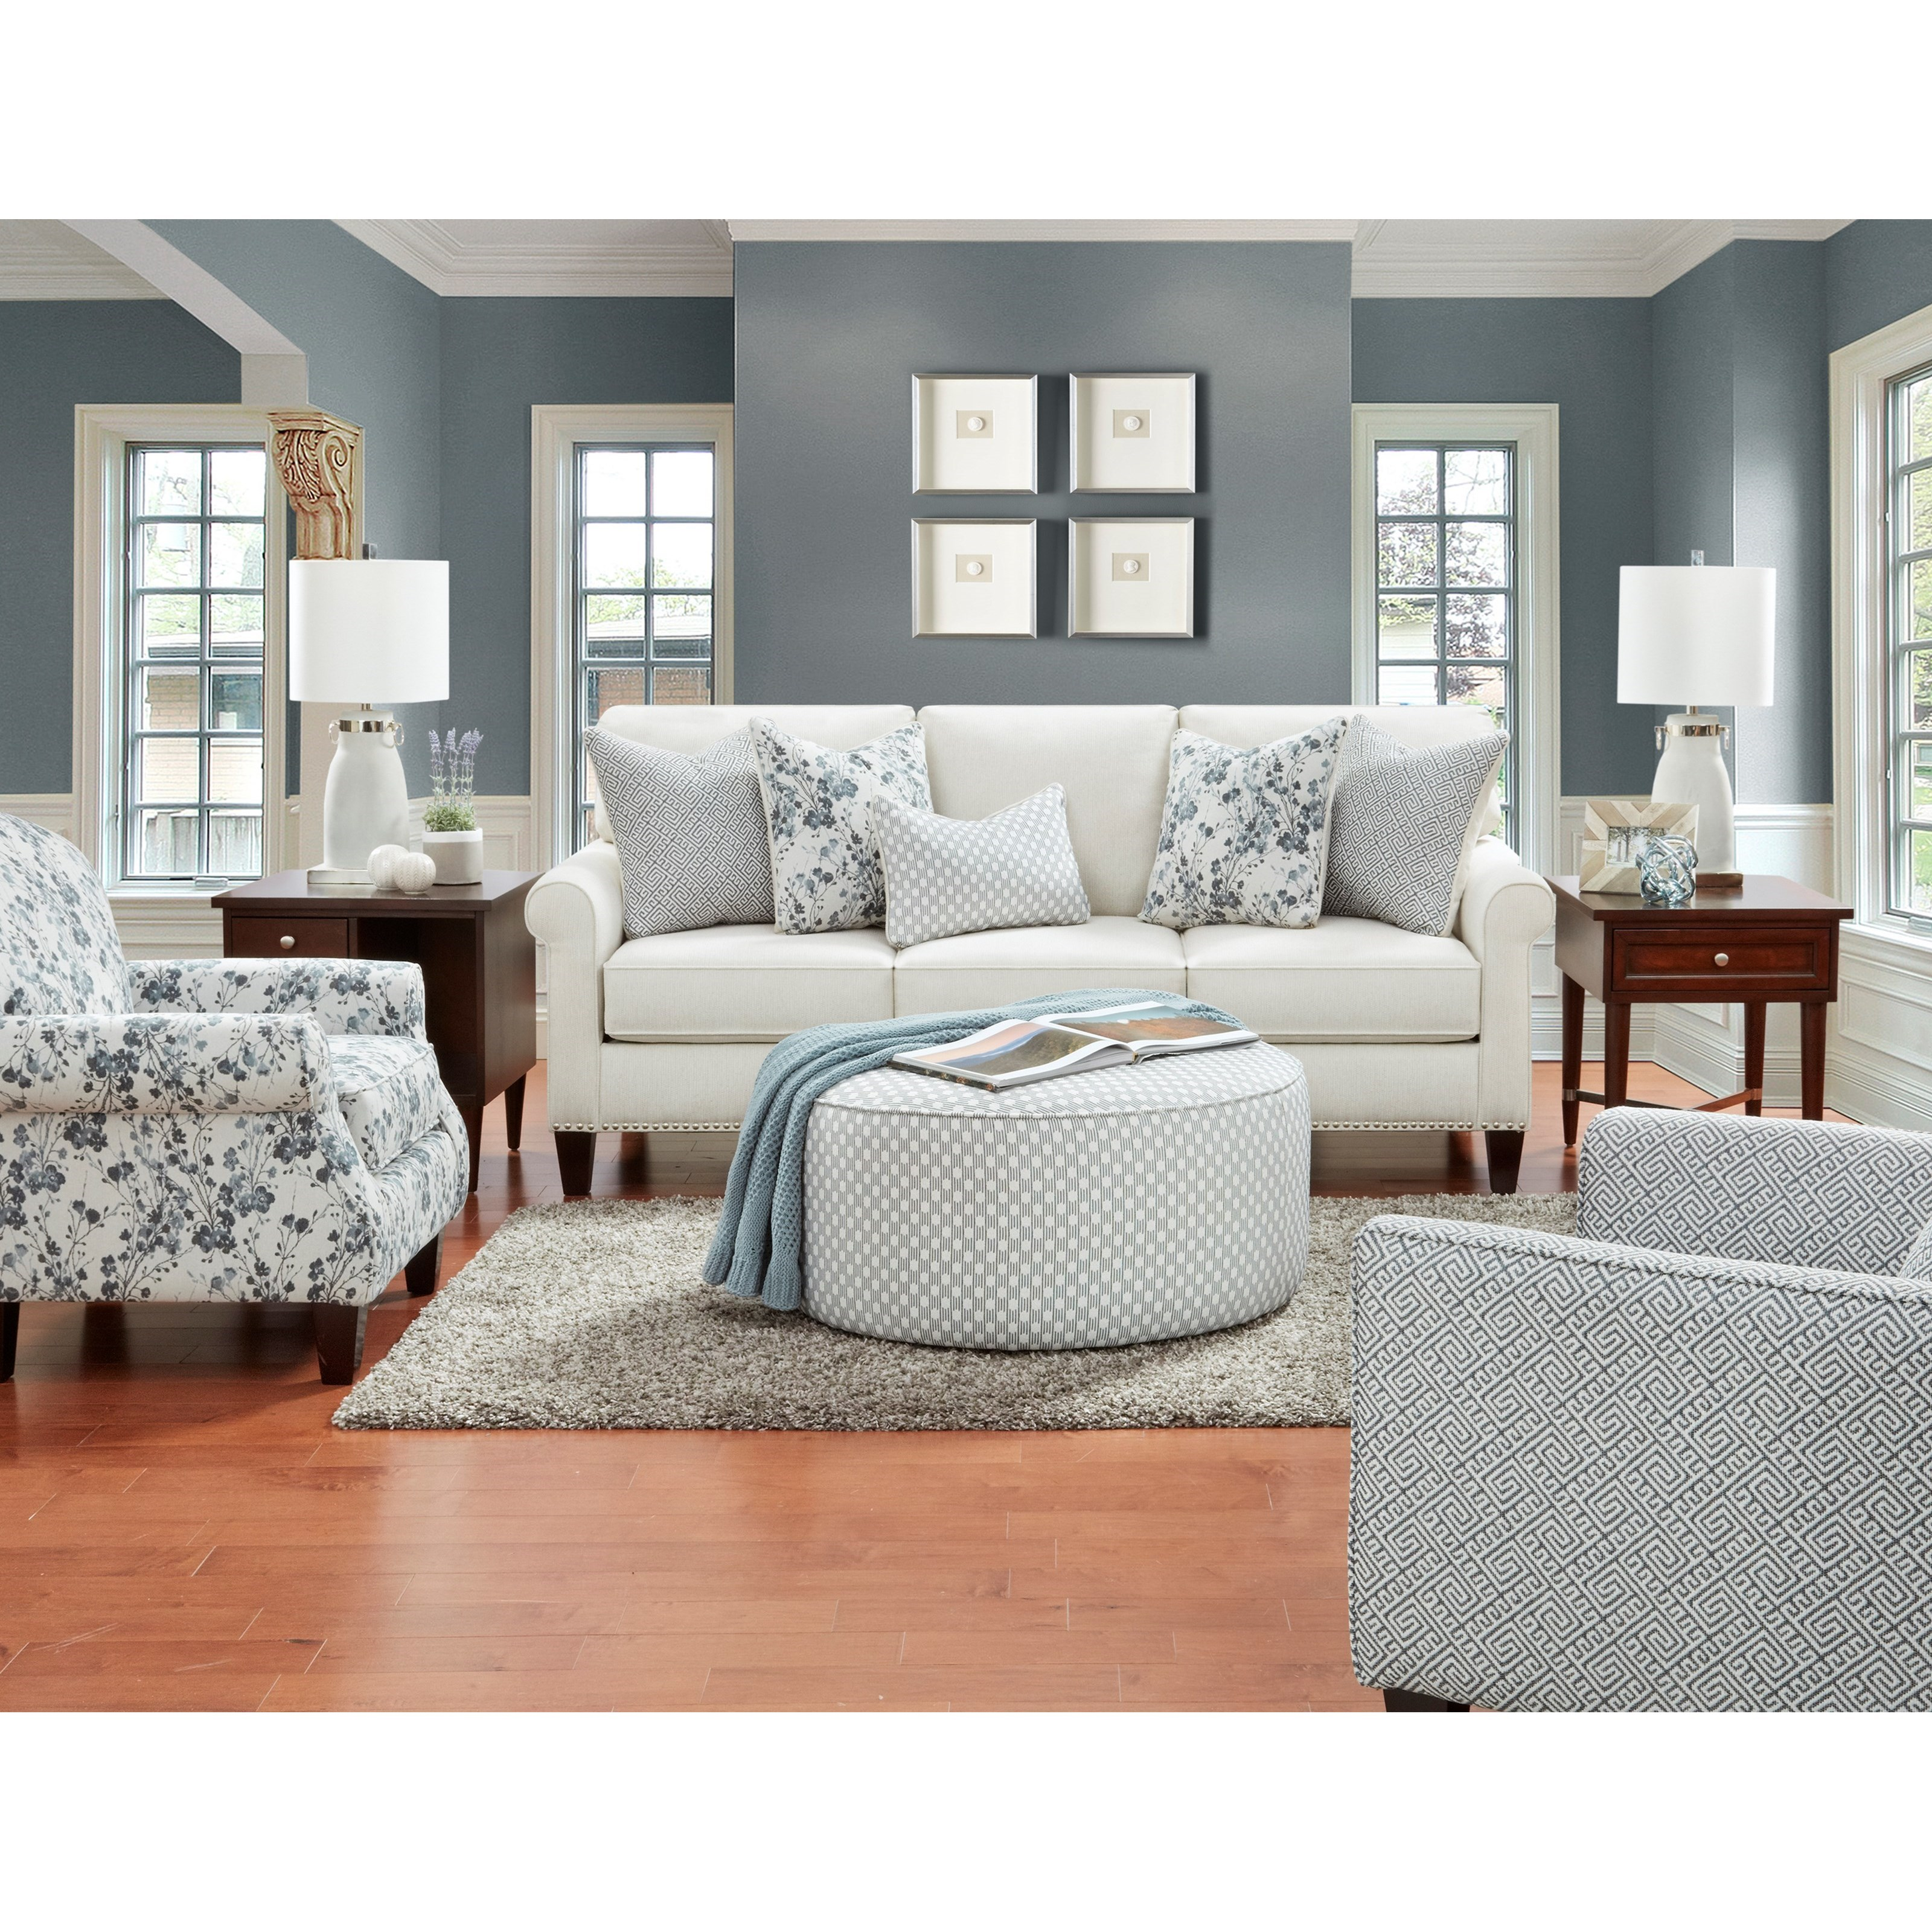 46-00 Living Room Group by Fusion Furniture at Furniture Superstore - Rochester, MN